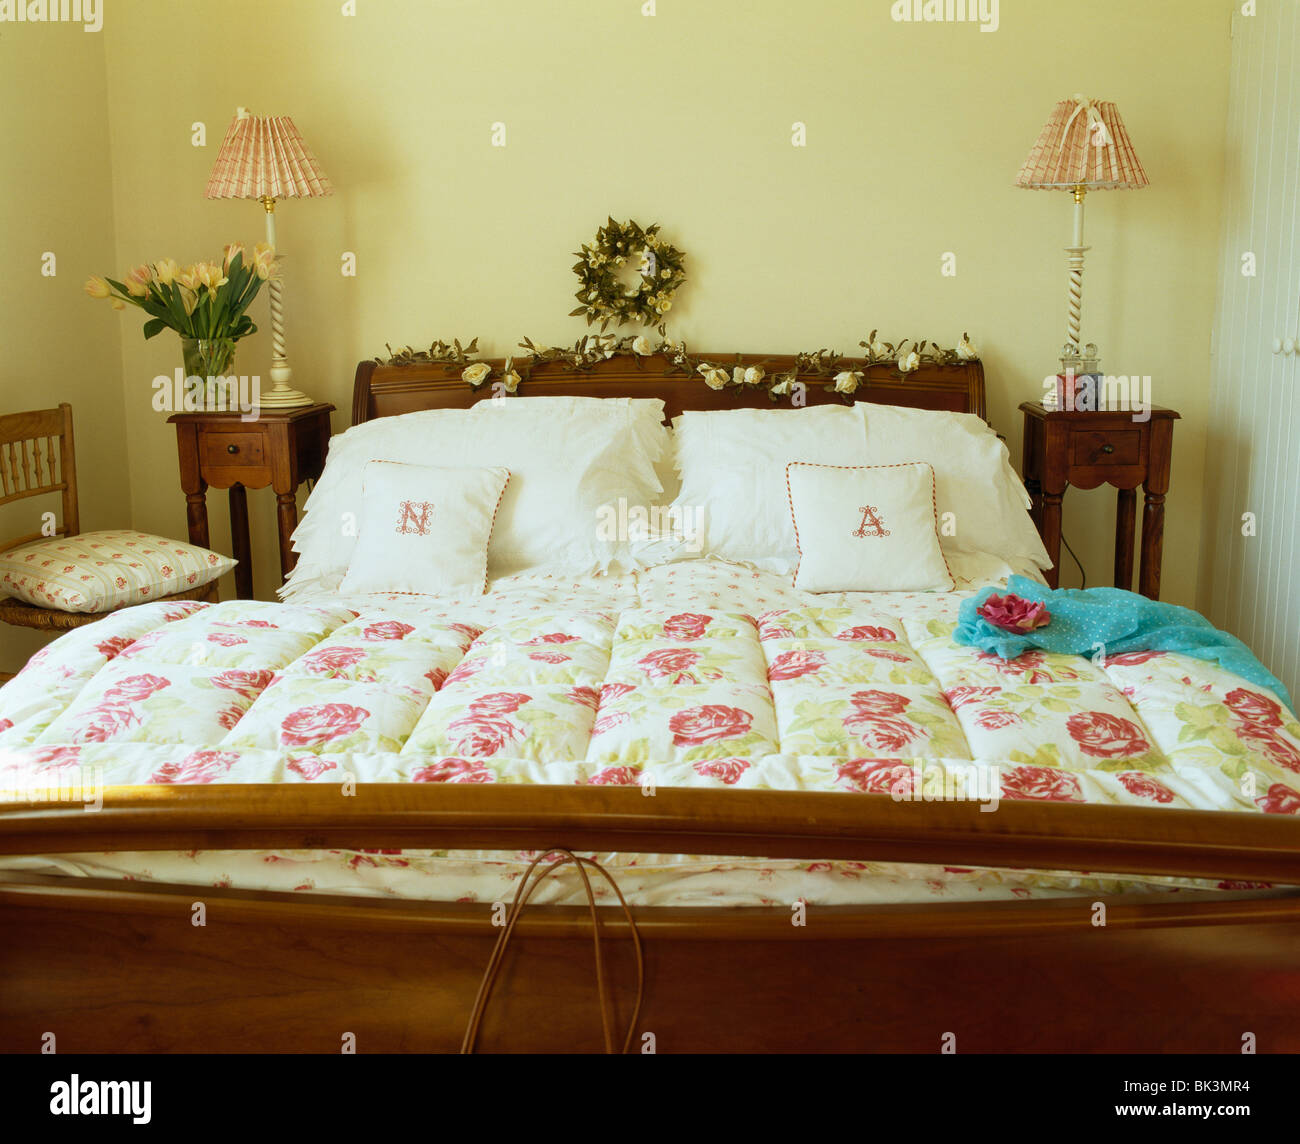 Rose-patterned quilt and white pillows on mahogany bed in country ... : patterned quilt - Adamdwight.com